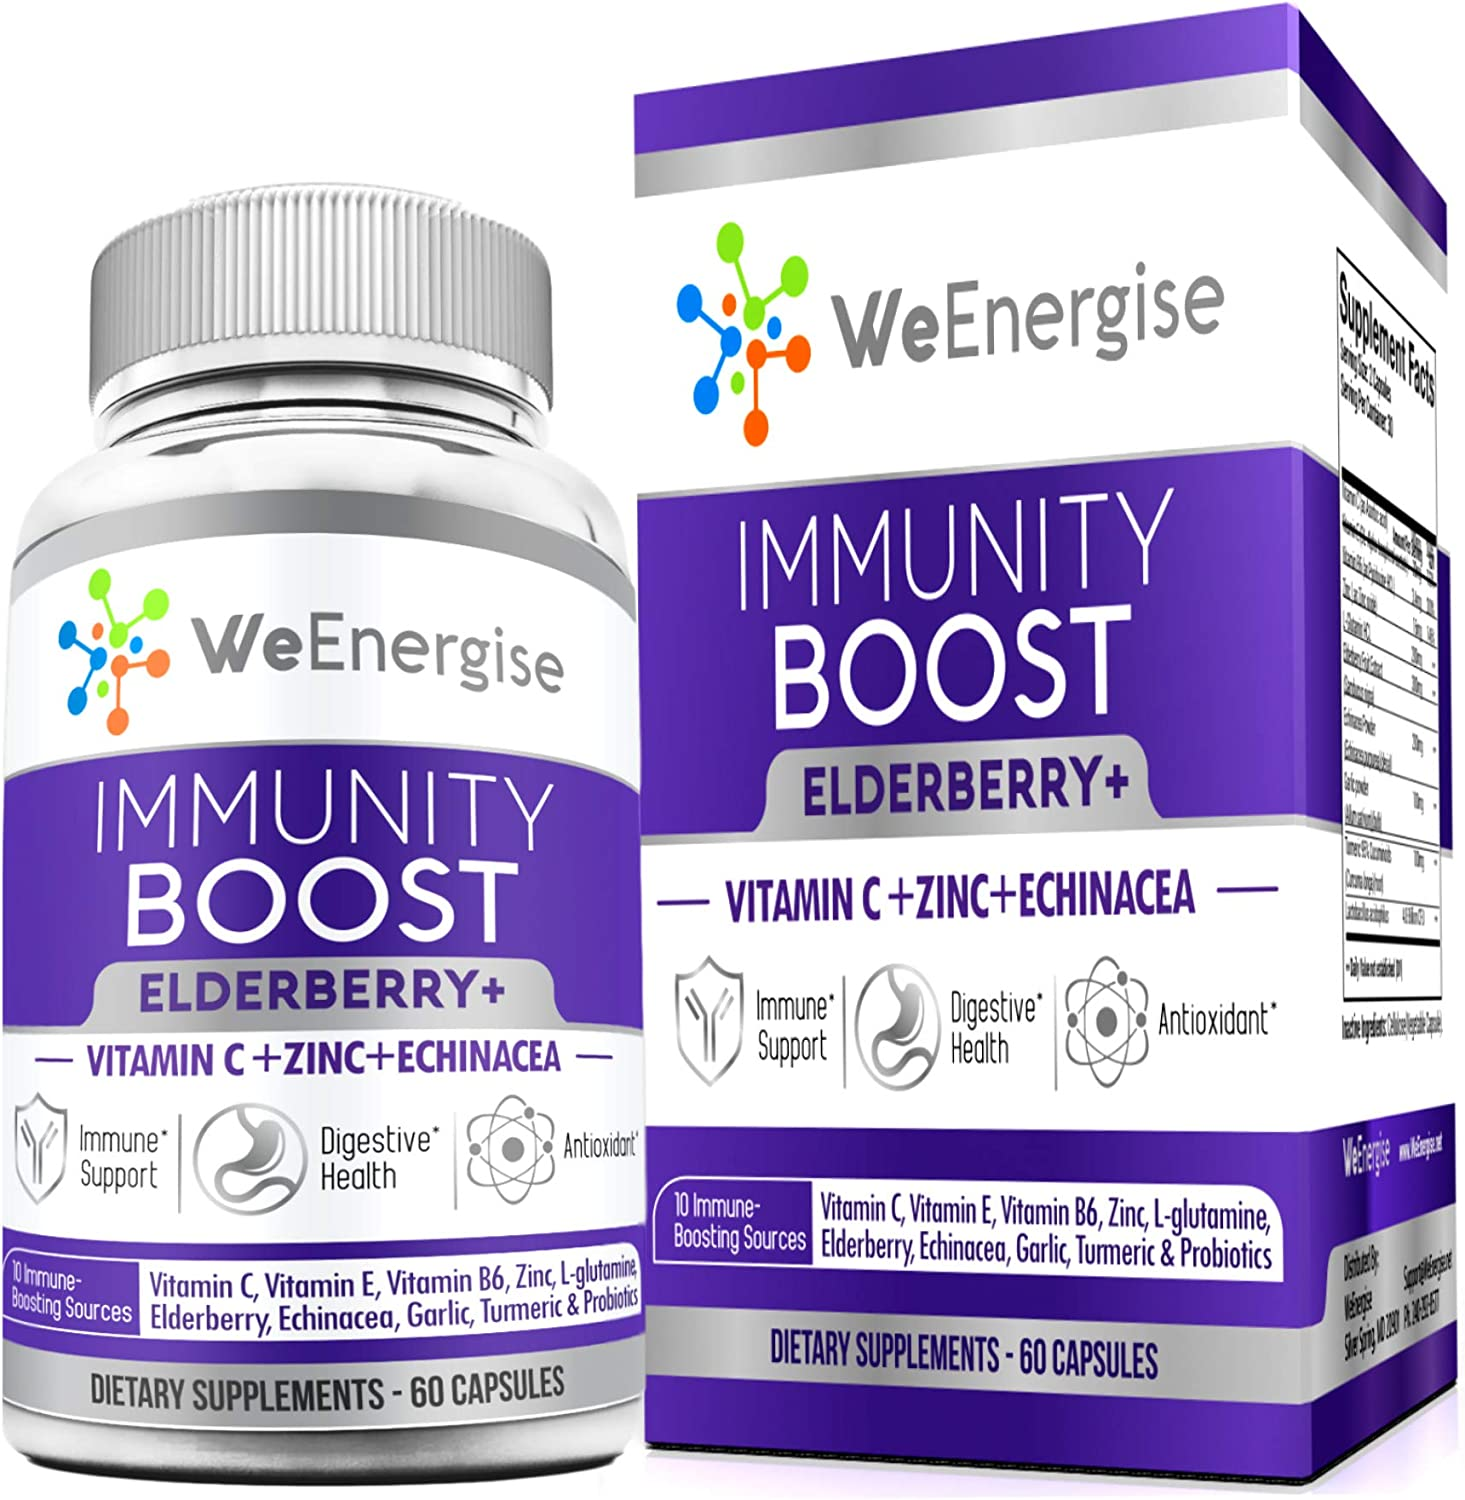 Immune Support Supplement - Black Elderberry Capsule/Pill with Zinc, Vitamin C, Echinacea & Vitamin E – 10 in 1 Booster Superfood Formula for Immunity Support & Respiratory Health - 60 Capsules